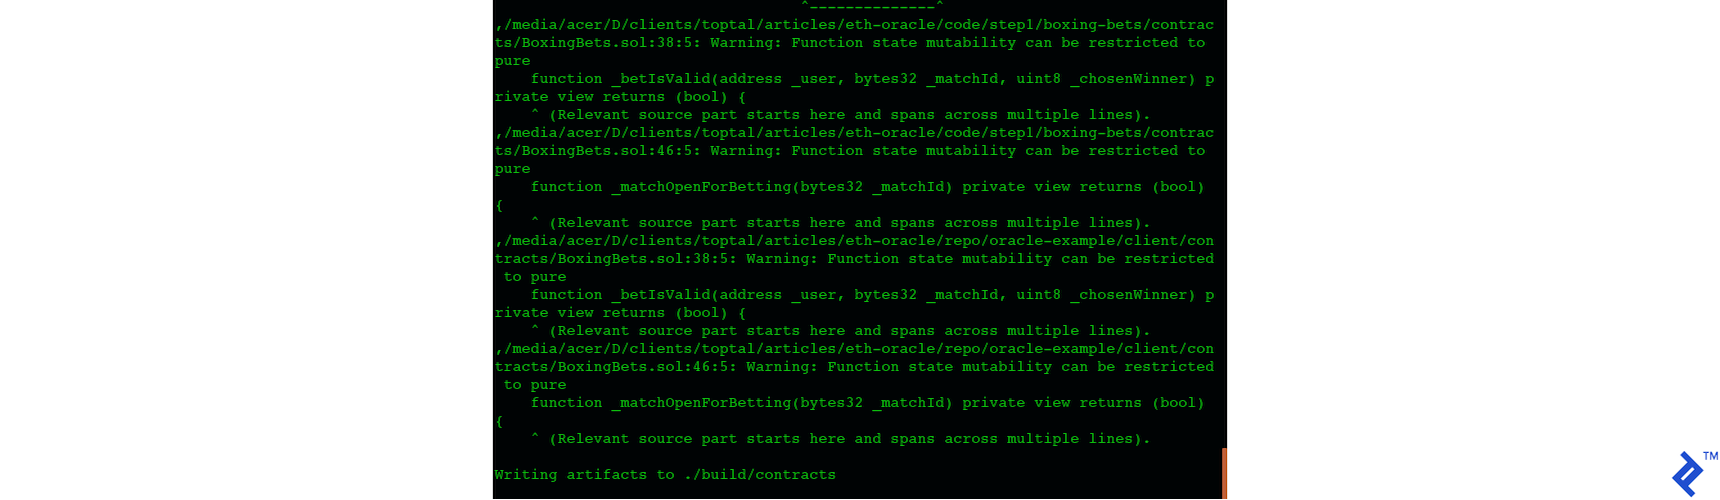 Second screenshot of compiling and migrating the contract